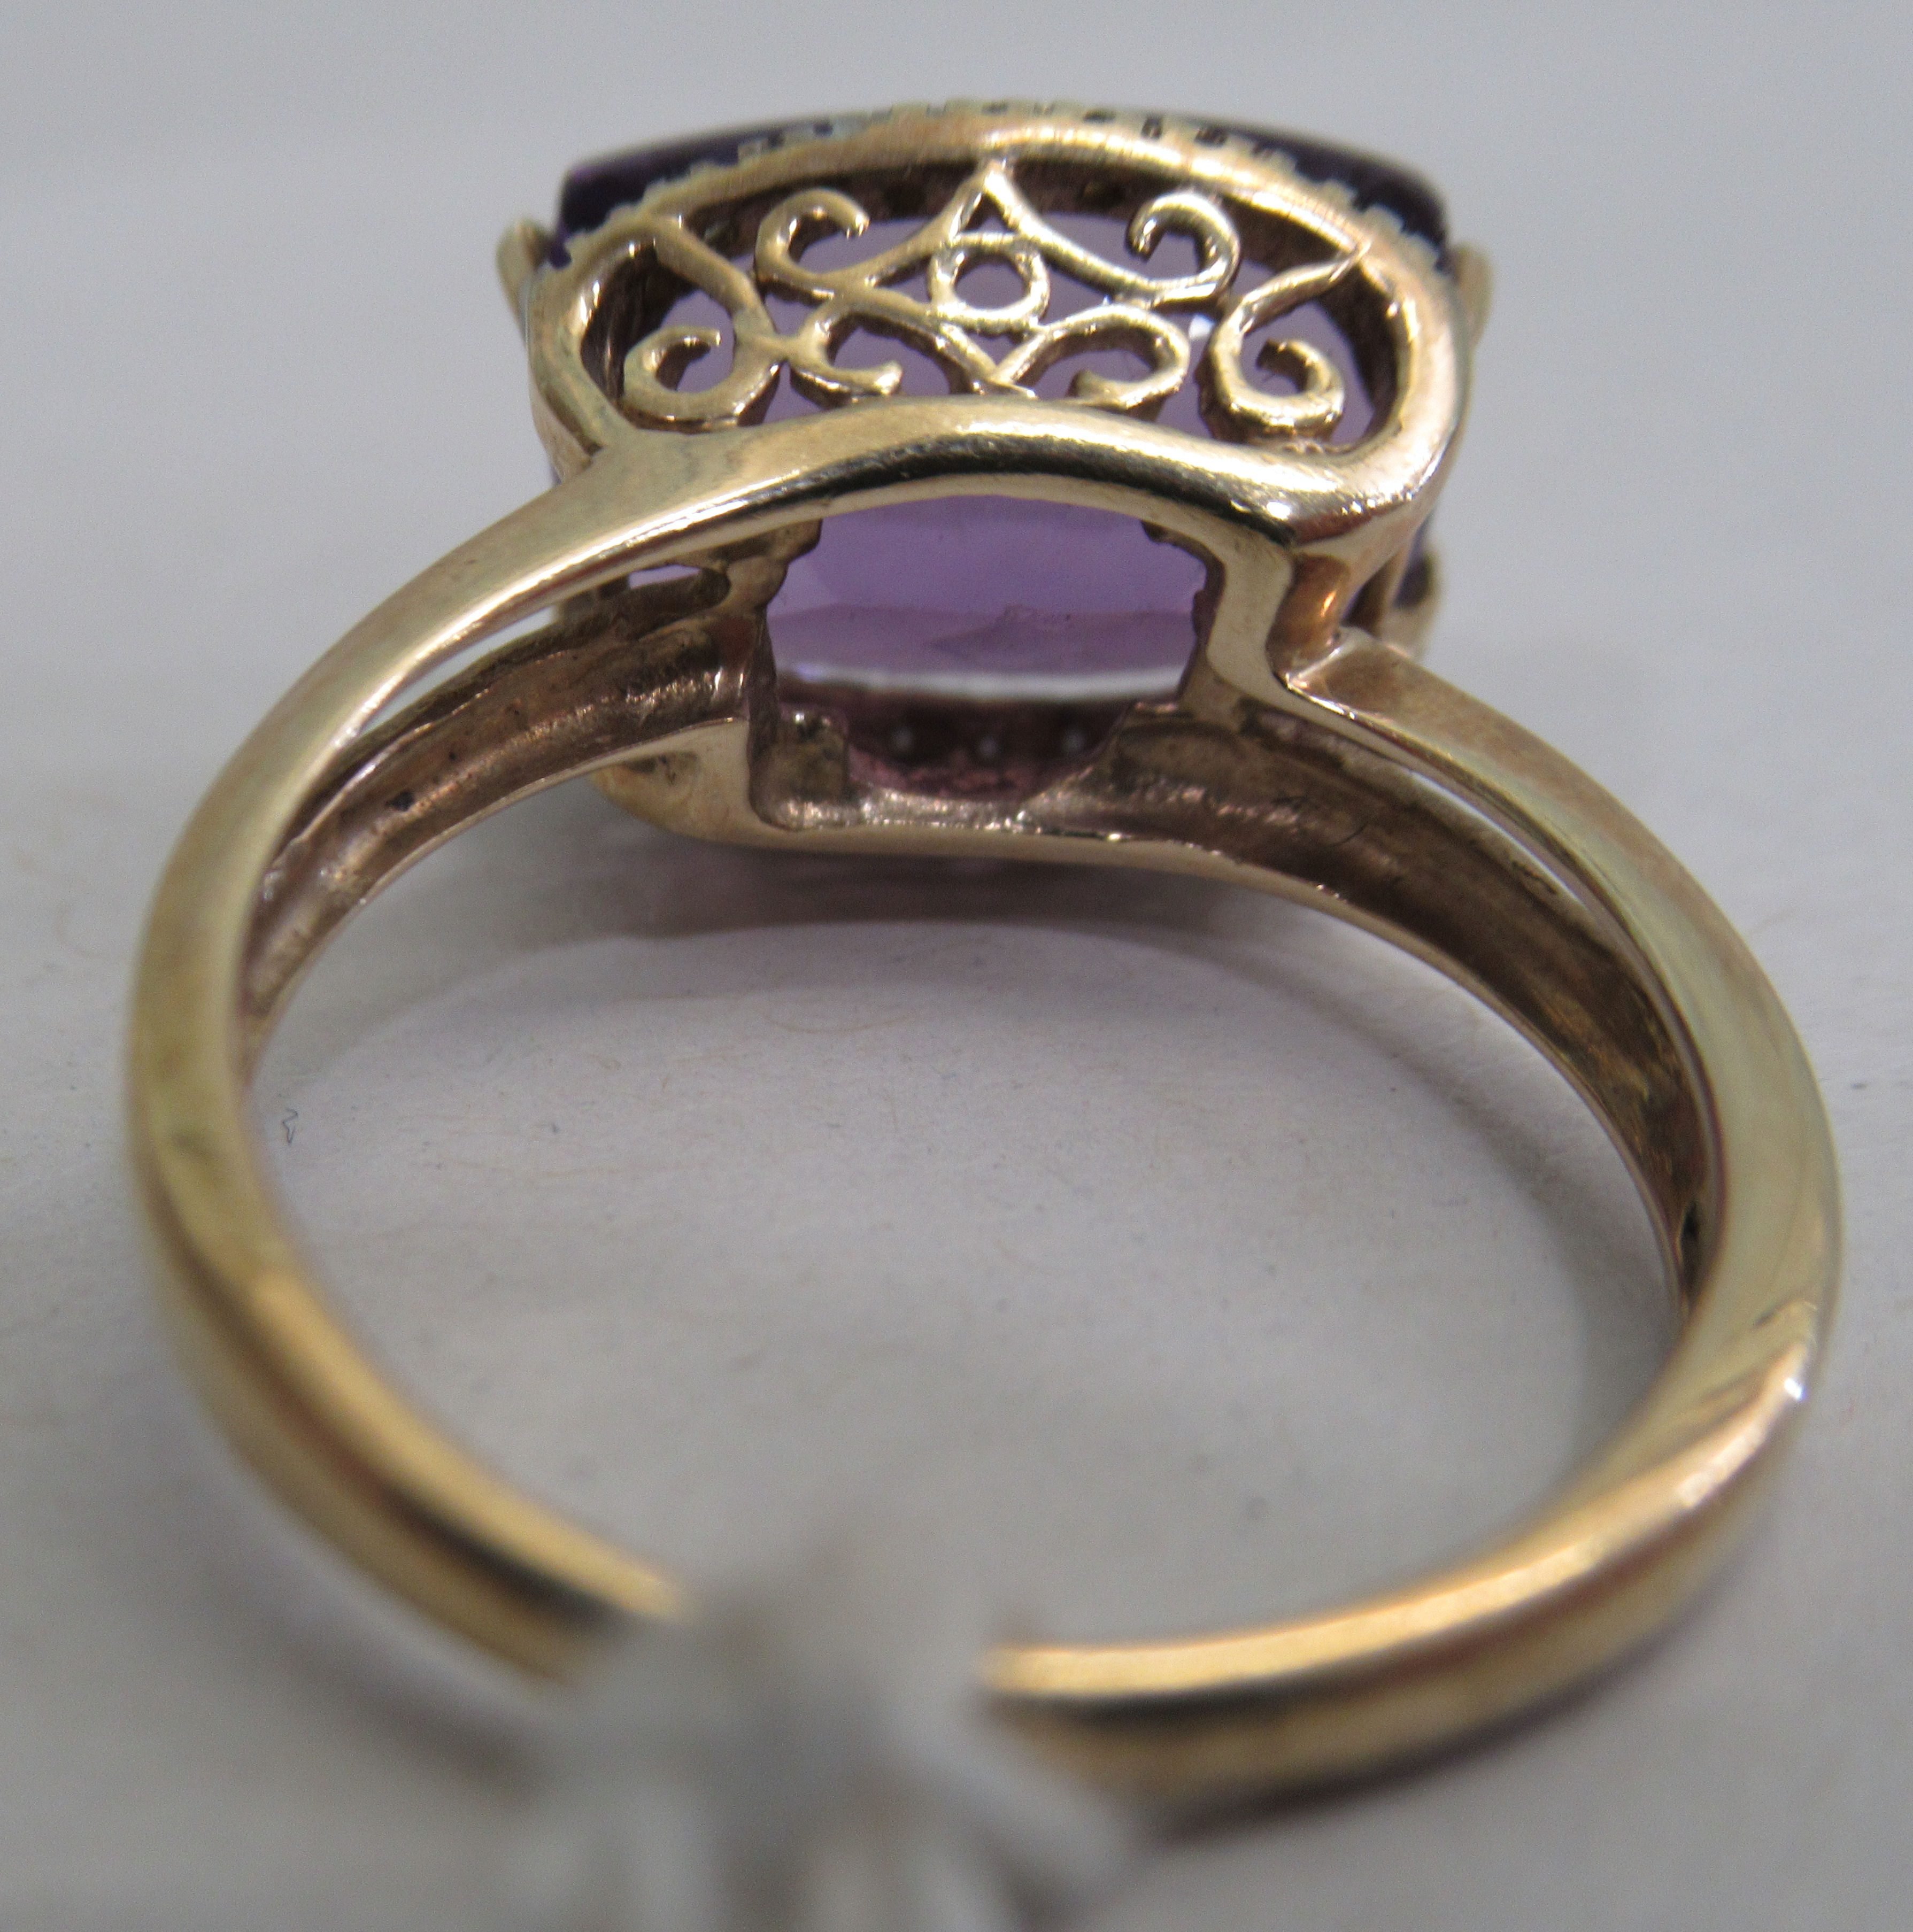 A 9ct gold amethyst and diamond ring - Image 3 of 3